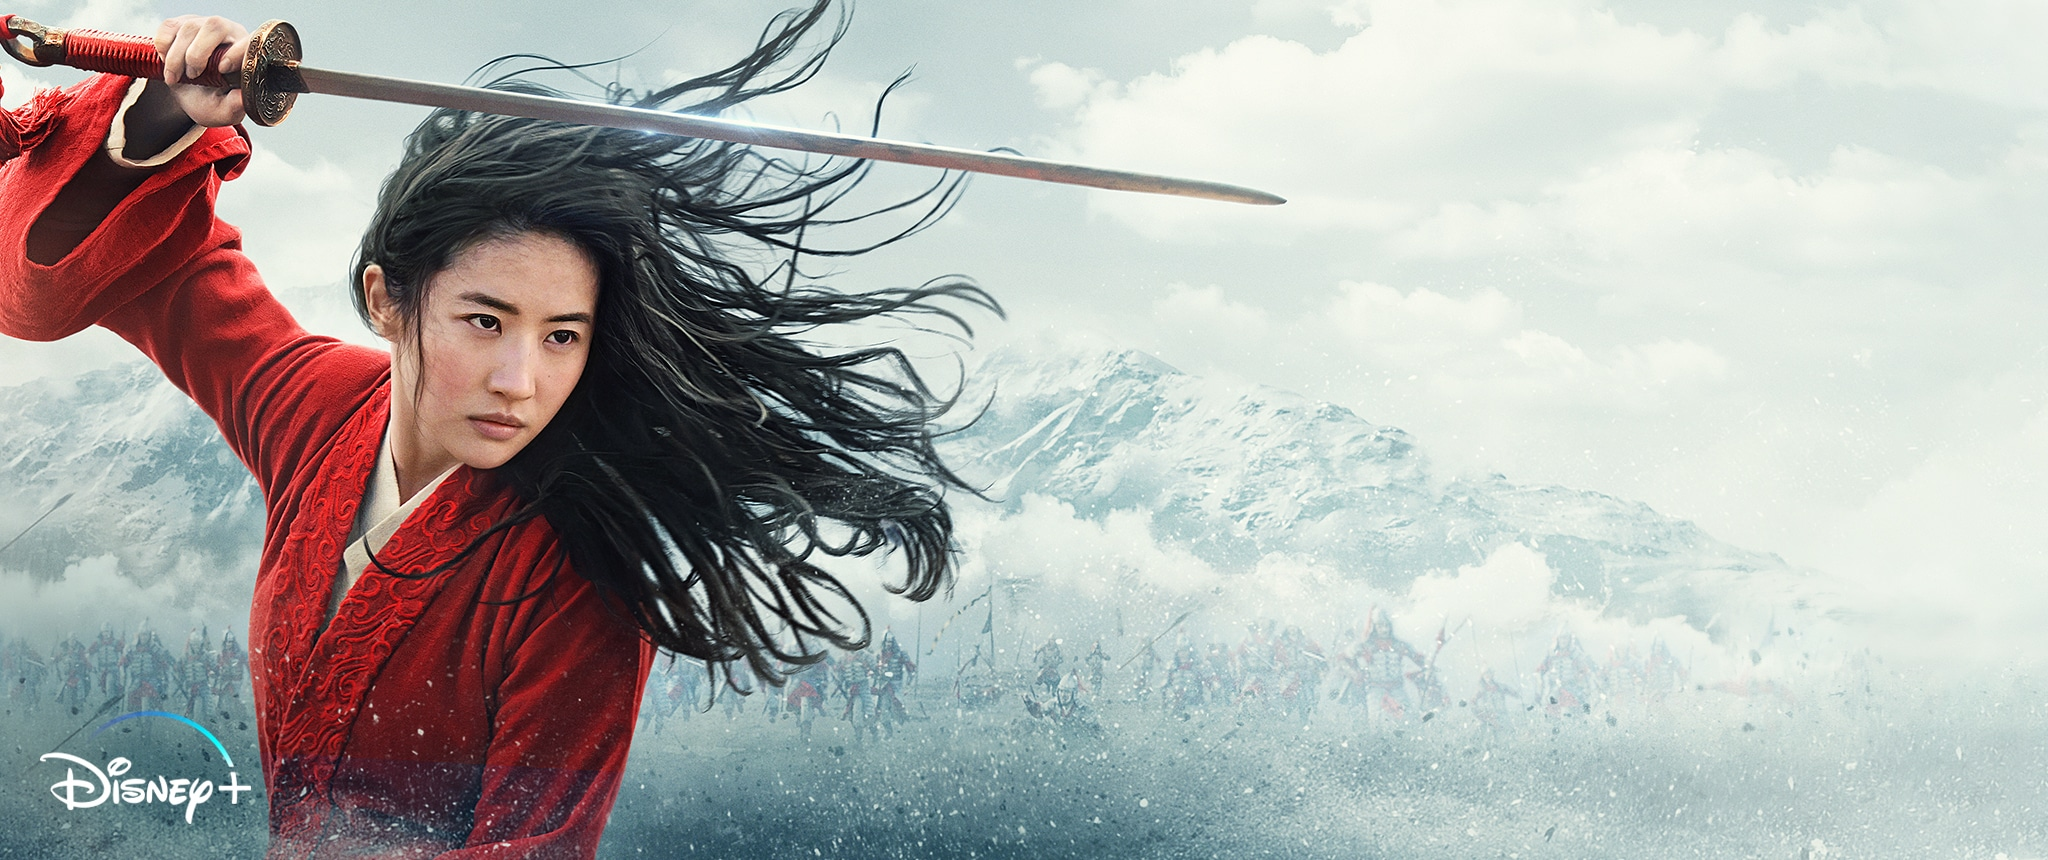 Hero - Disney+ - Mulan (2020) Streaming Exclusively on Disney+